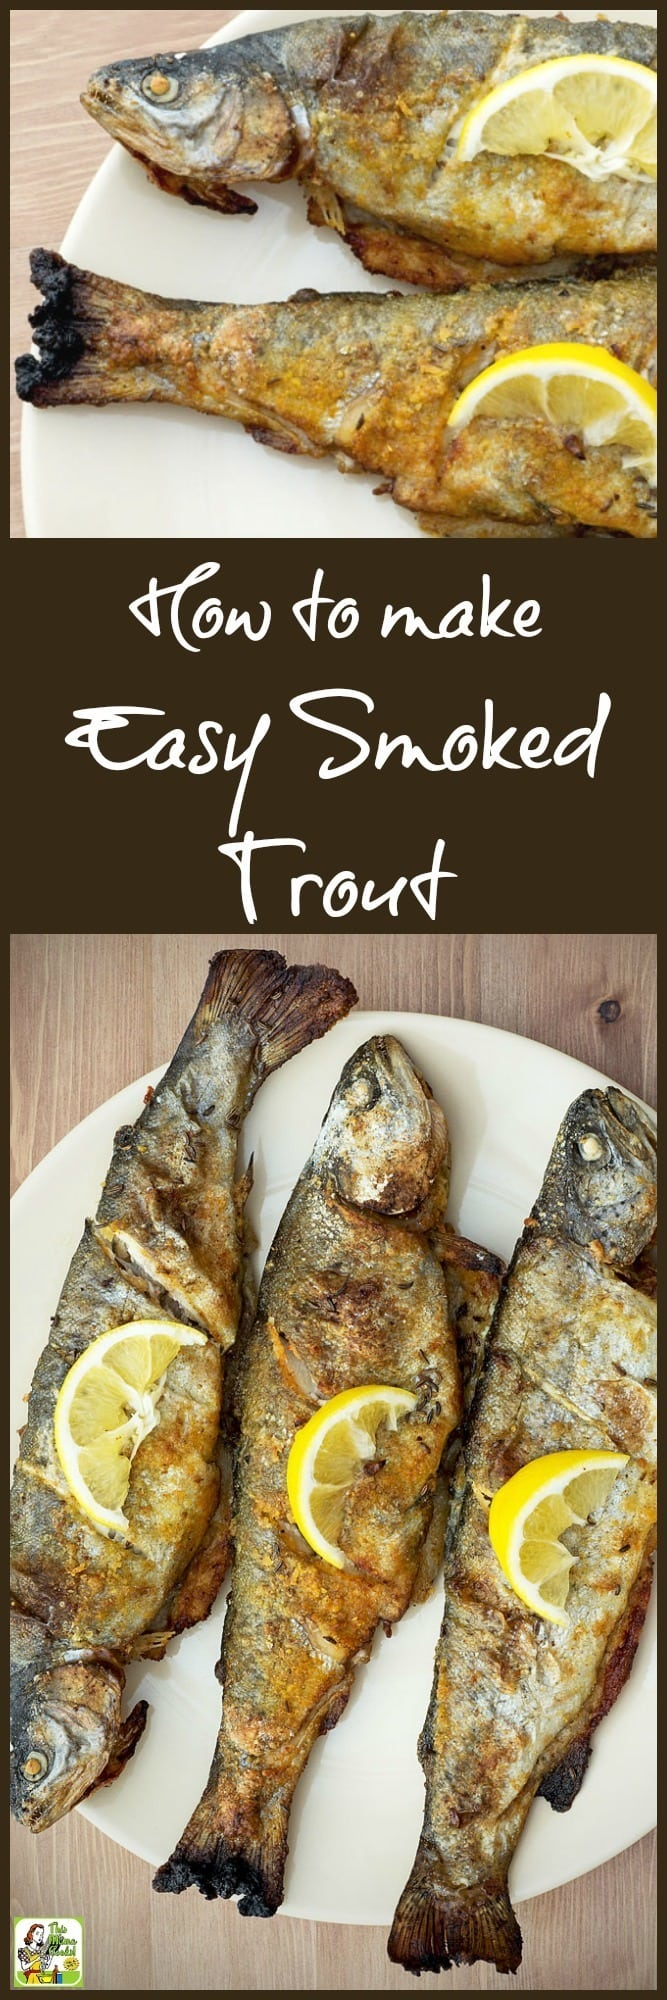 Got fish? Learn how to make smoked trout for dinner or your next fish fry party! It's easier than you think if you have an electric smoker or a grill that you can smoke in. Just make a simple marinade from salad dressing. Once you've tasted smoked trout, you'll never want to cook fish another way!